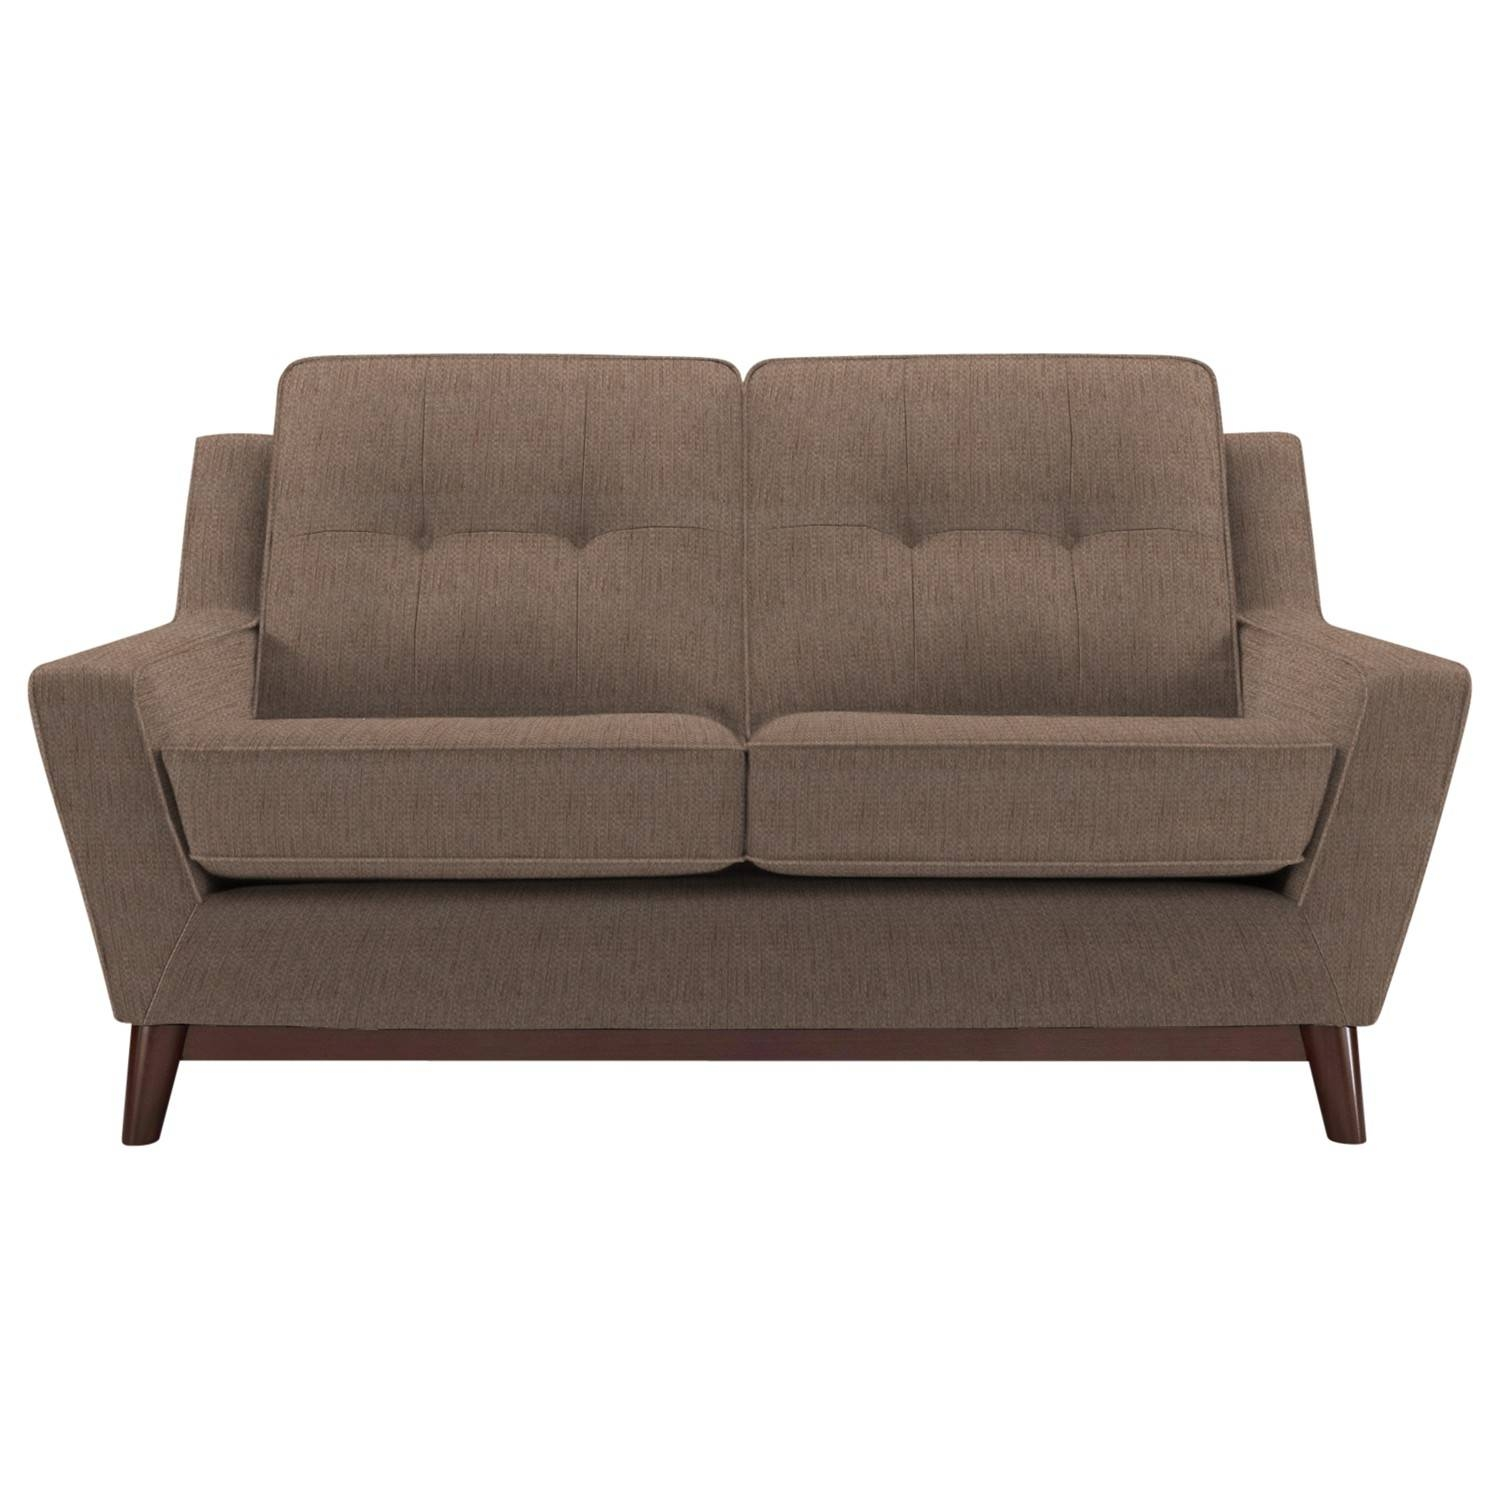 Modern Couches For Small Spaces, Modern Modular Sofa Fabric In Small Modern Sofas (View 5 of 15)